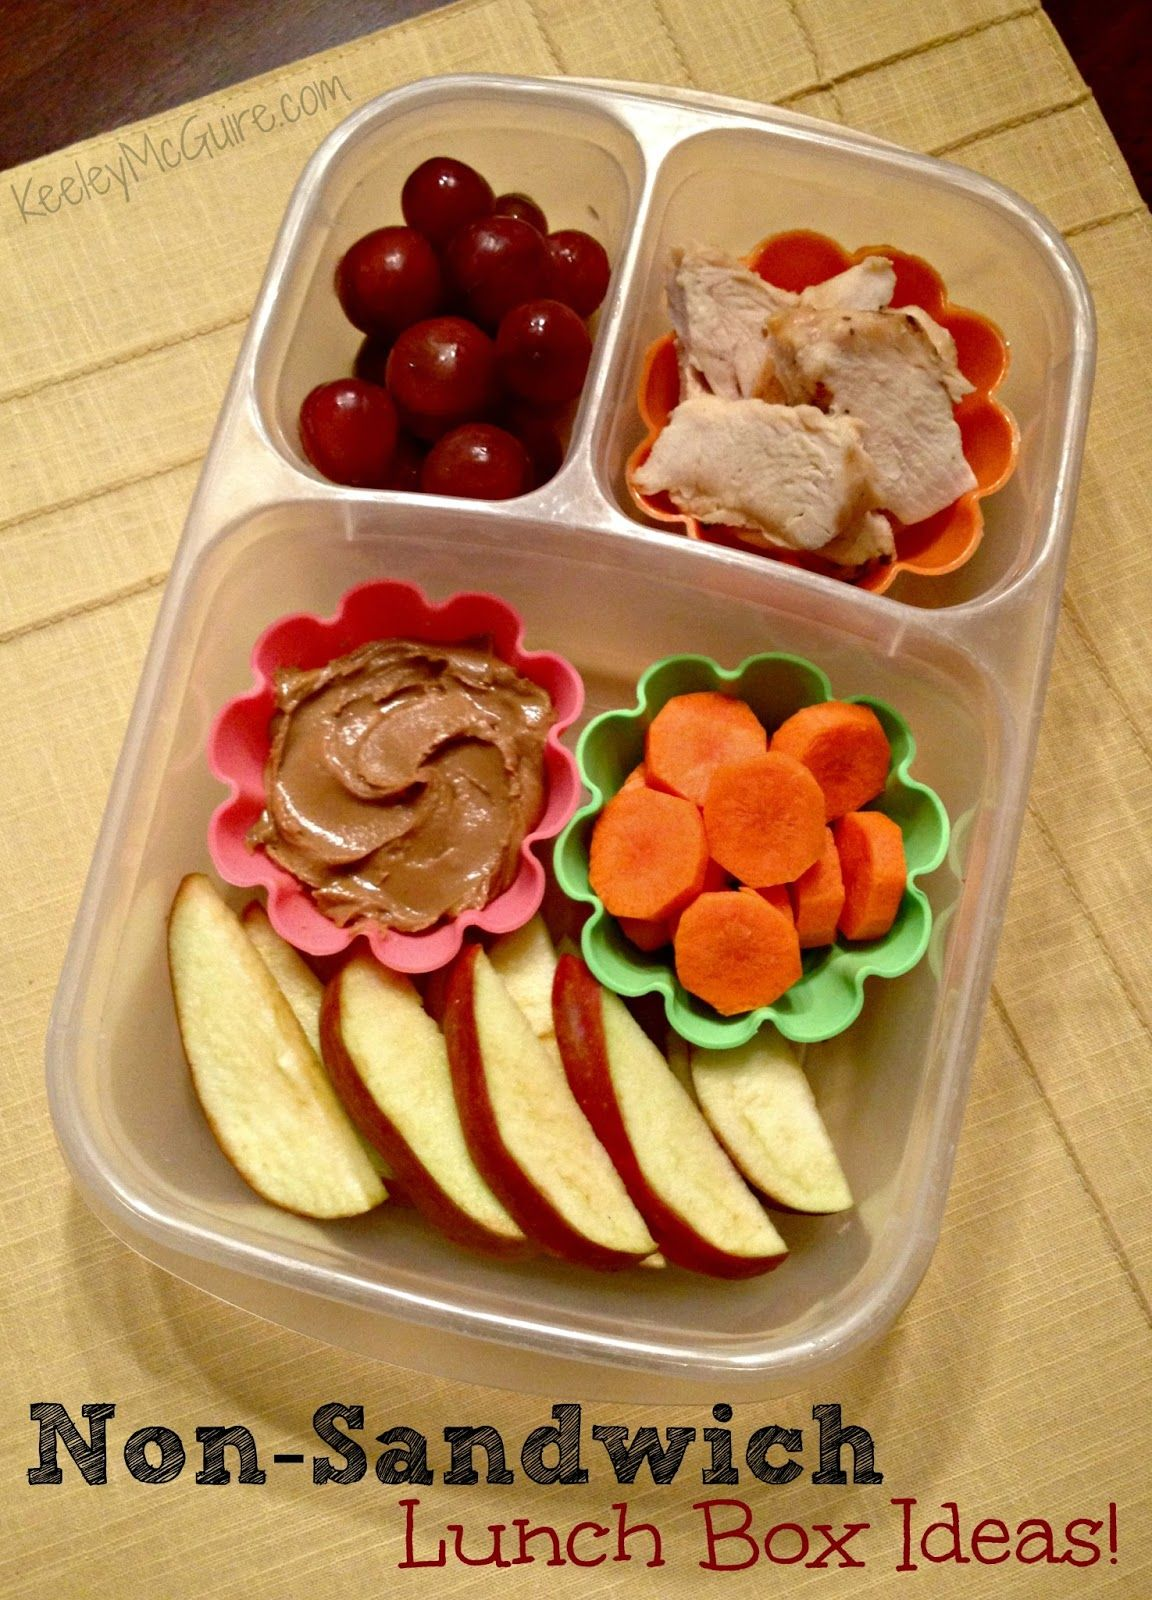 Lunch Made Easy 20 NonSandwich School Lunch Ideas for